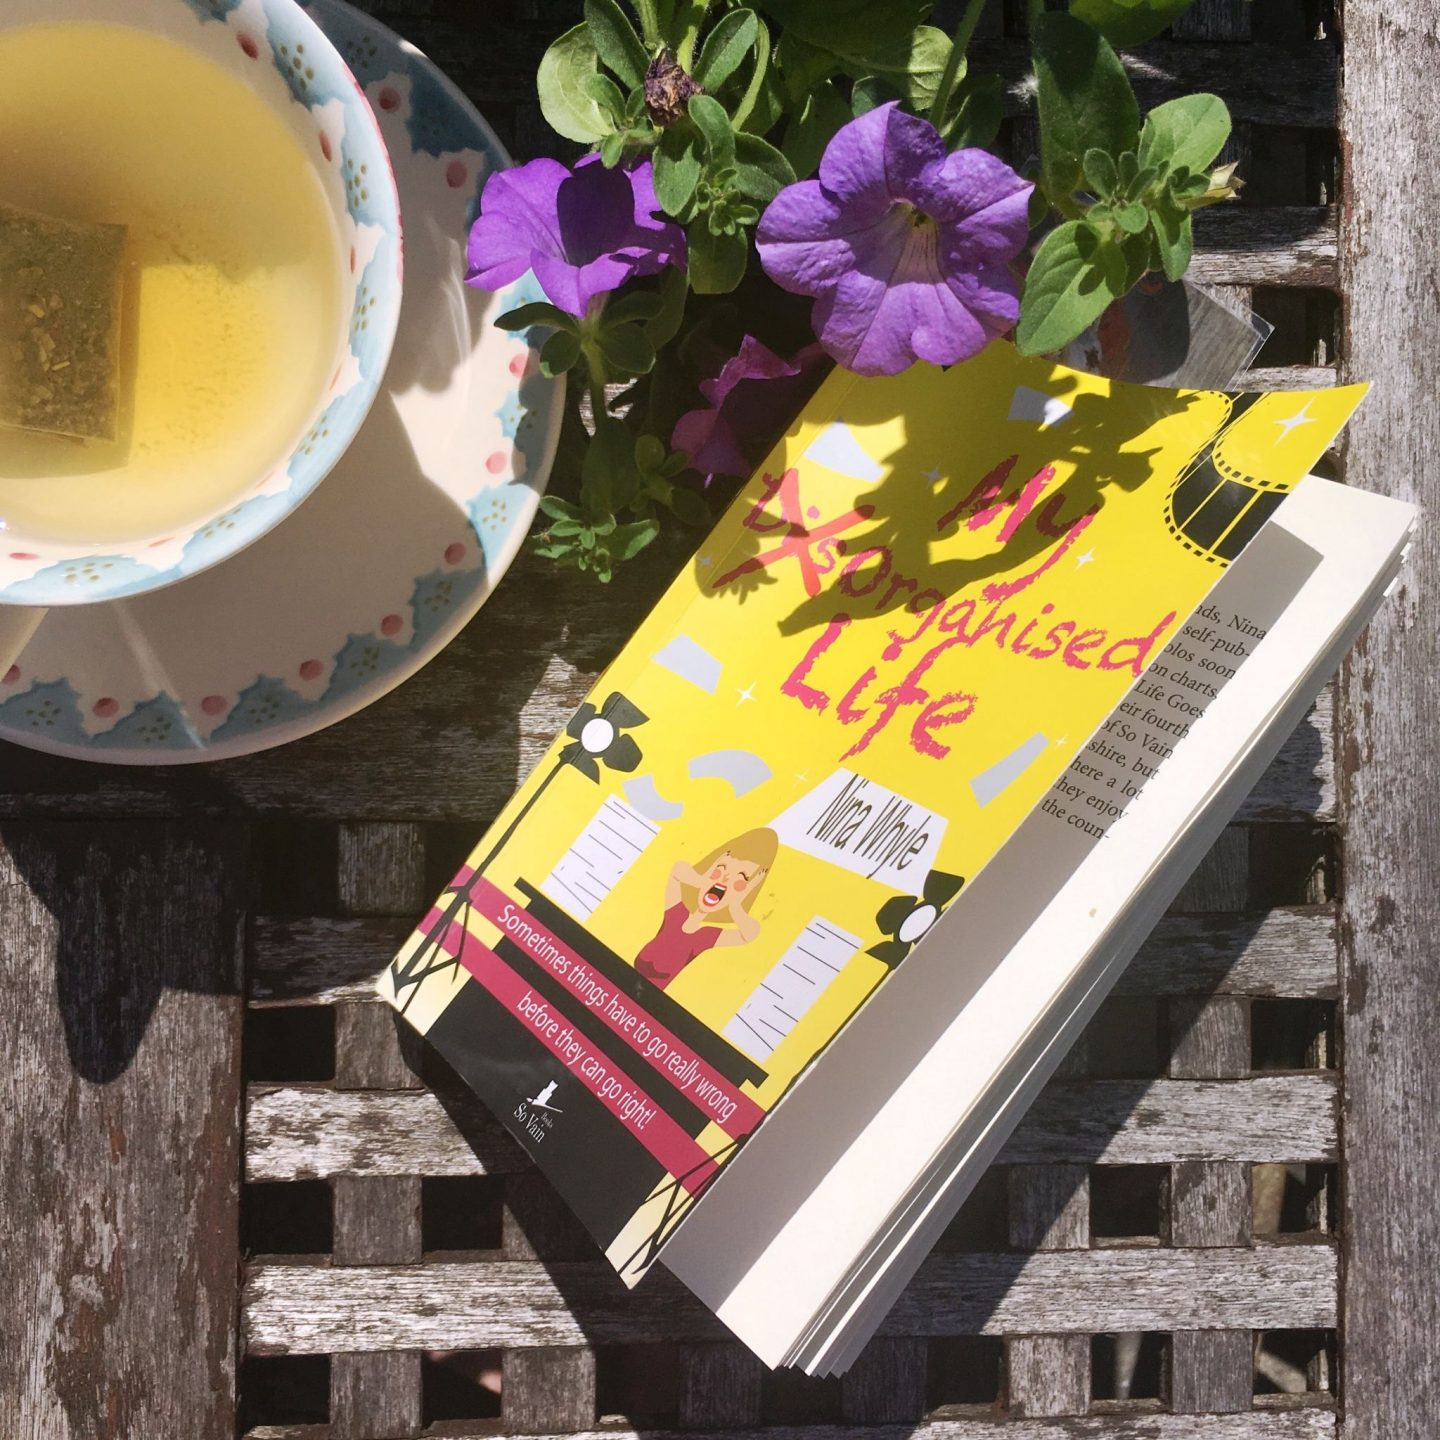 My DisOrganised Life: an ideal read for holiday…